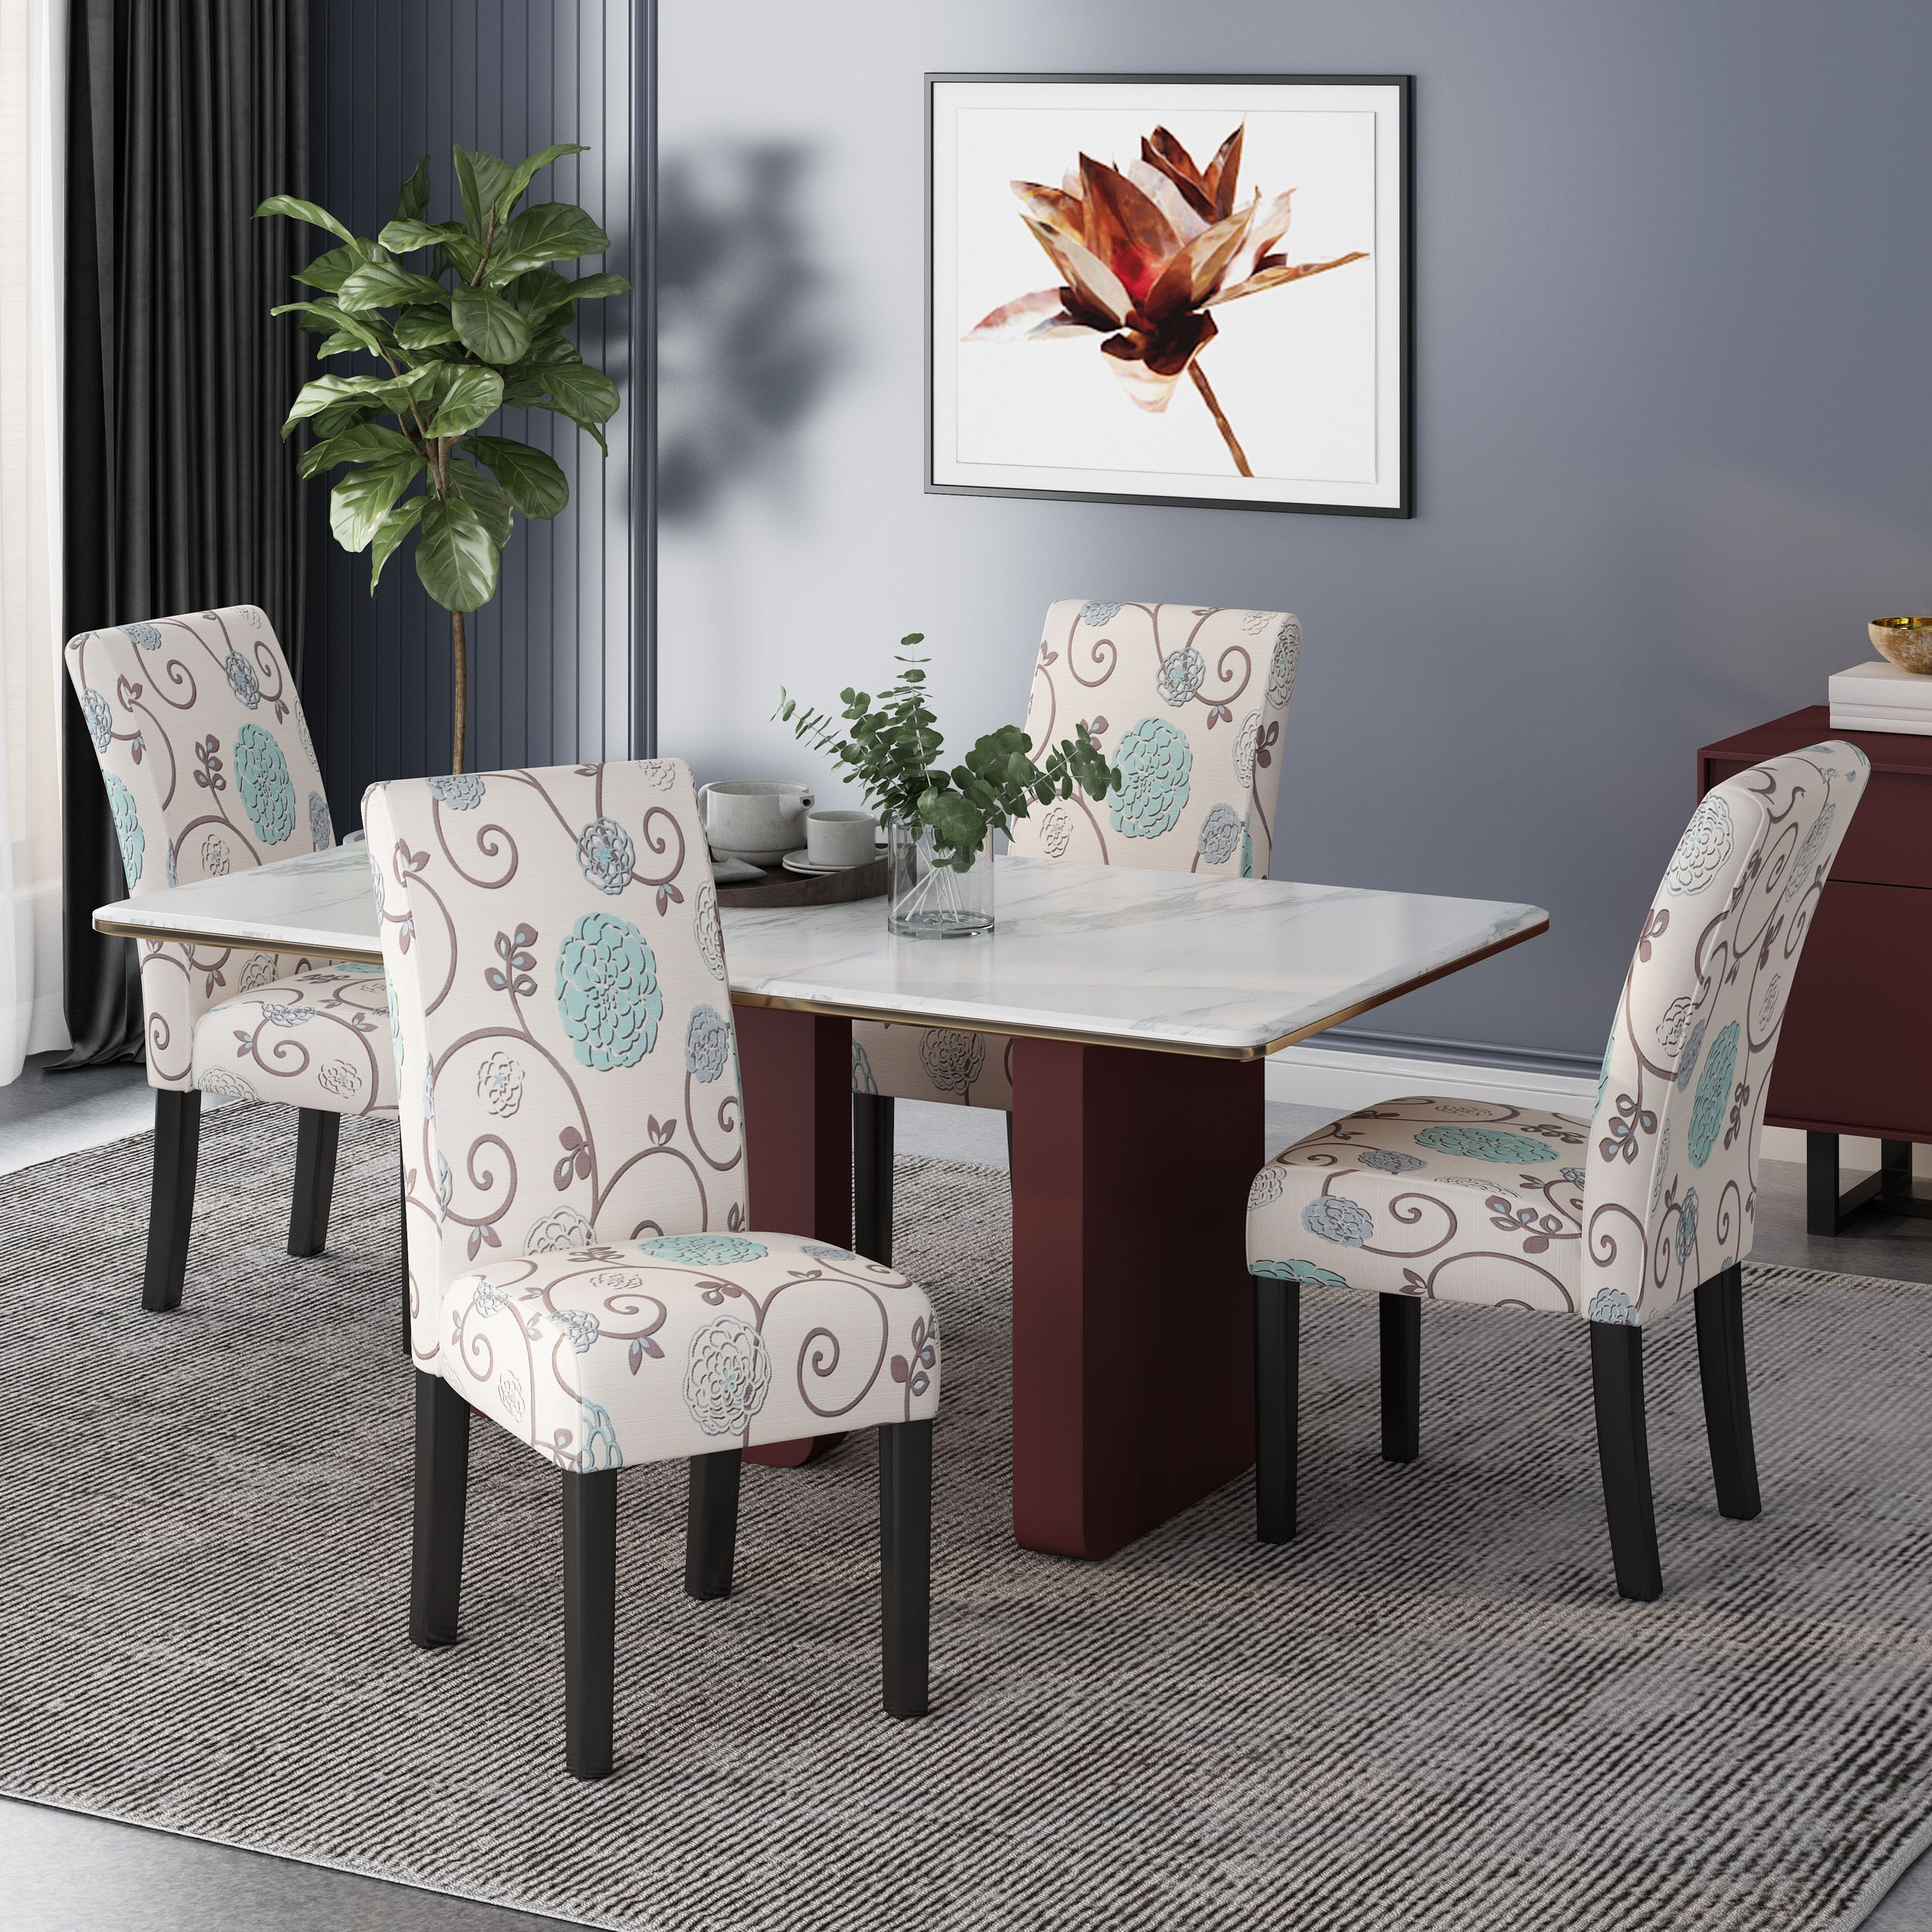 Pertica Patterned Upholstered Dining Chairs Set Of 4 By Christopher Knight Home Overstock 31294607